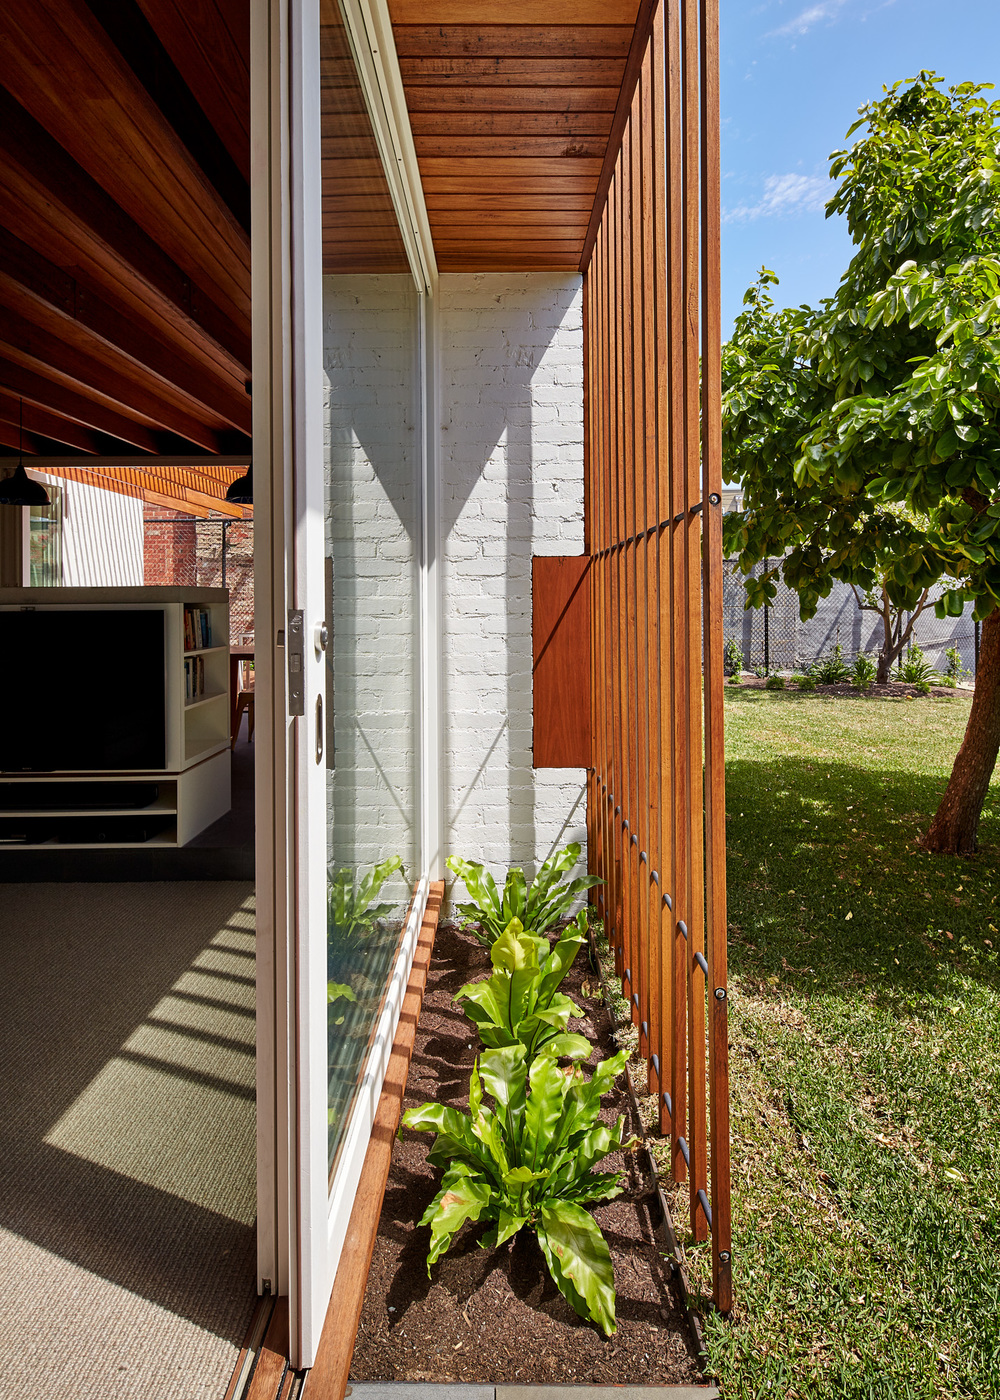 Rich Materials and Light-Filled Courtyards Connect Old to New